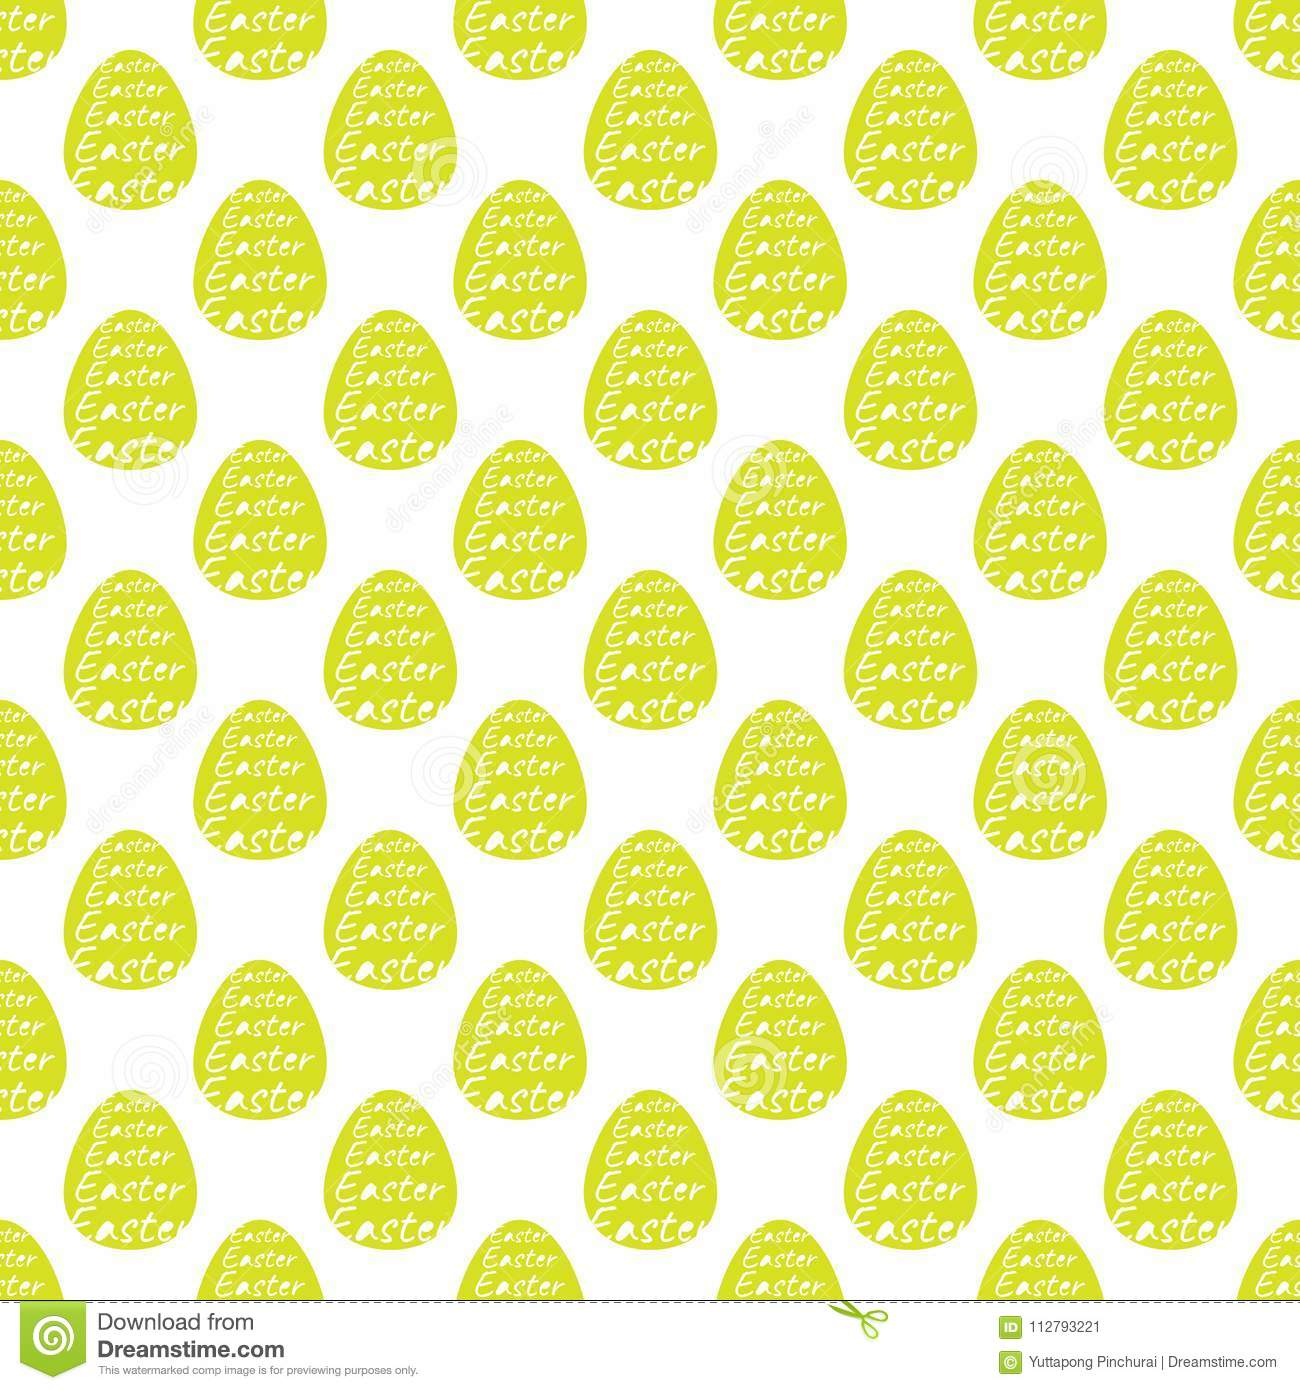 dorable easter egg coloring template pattern coloring page